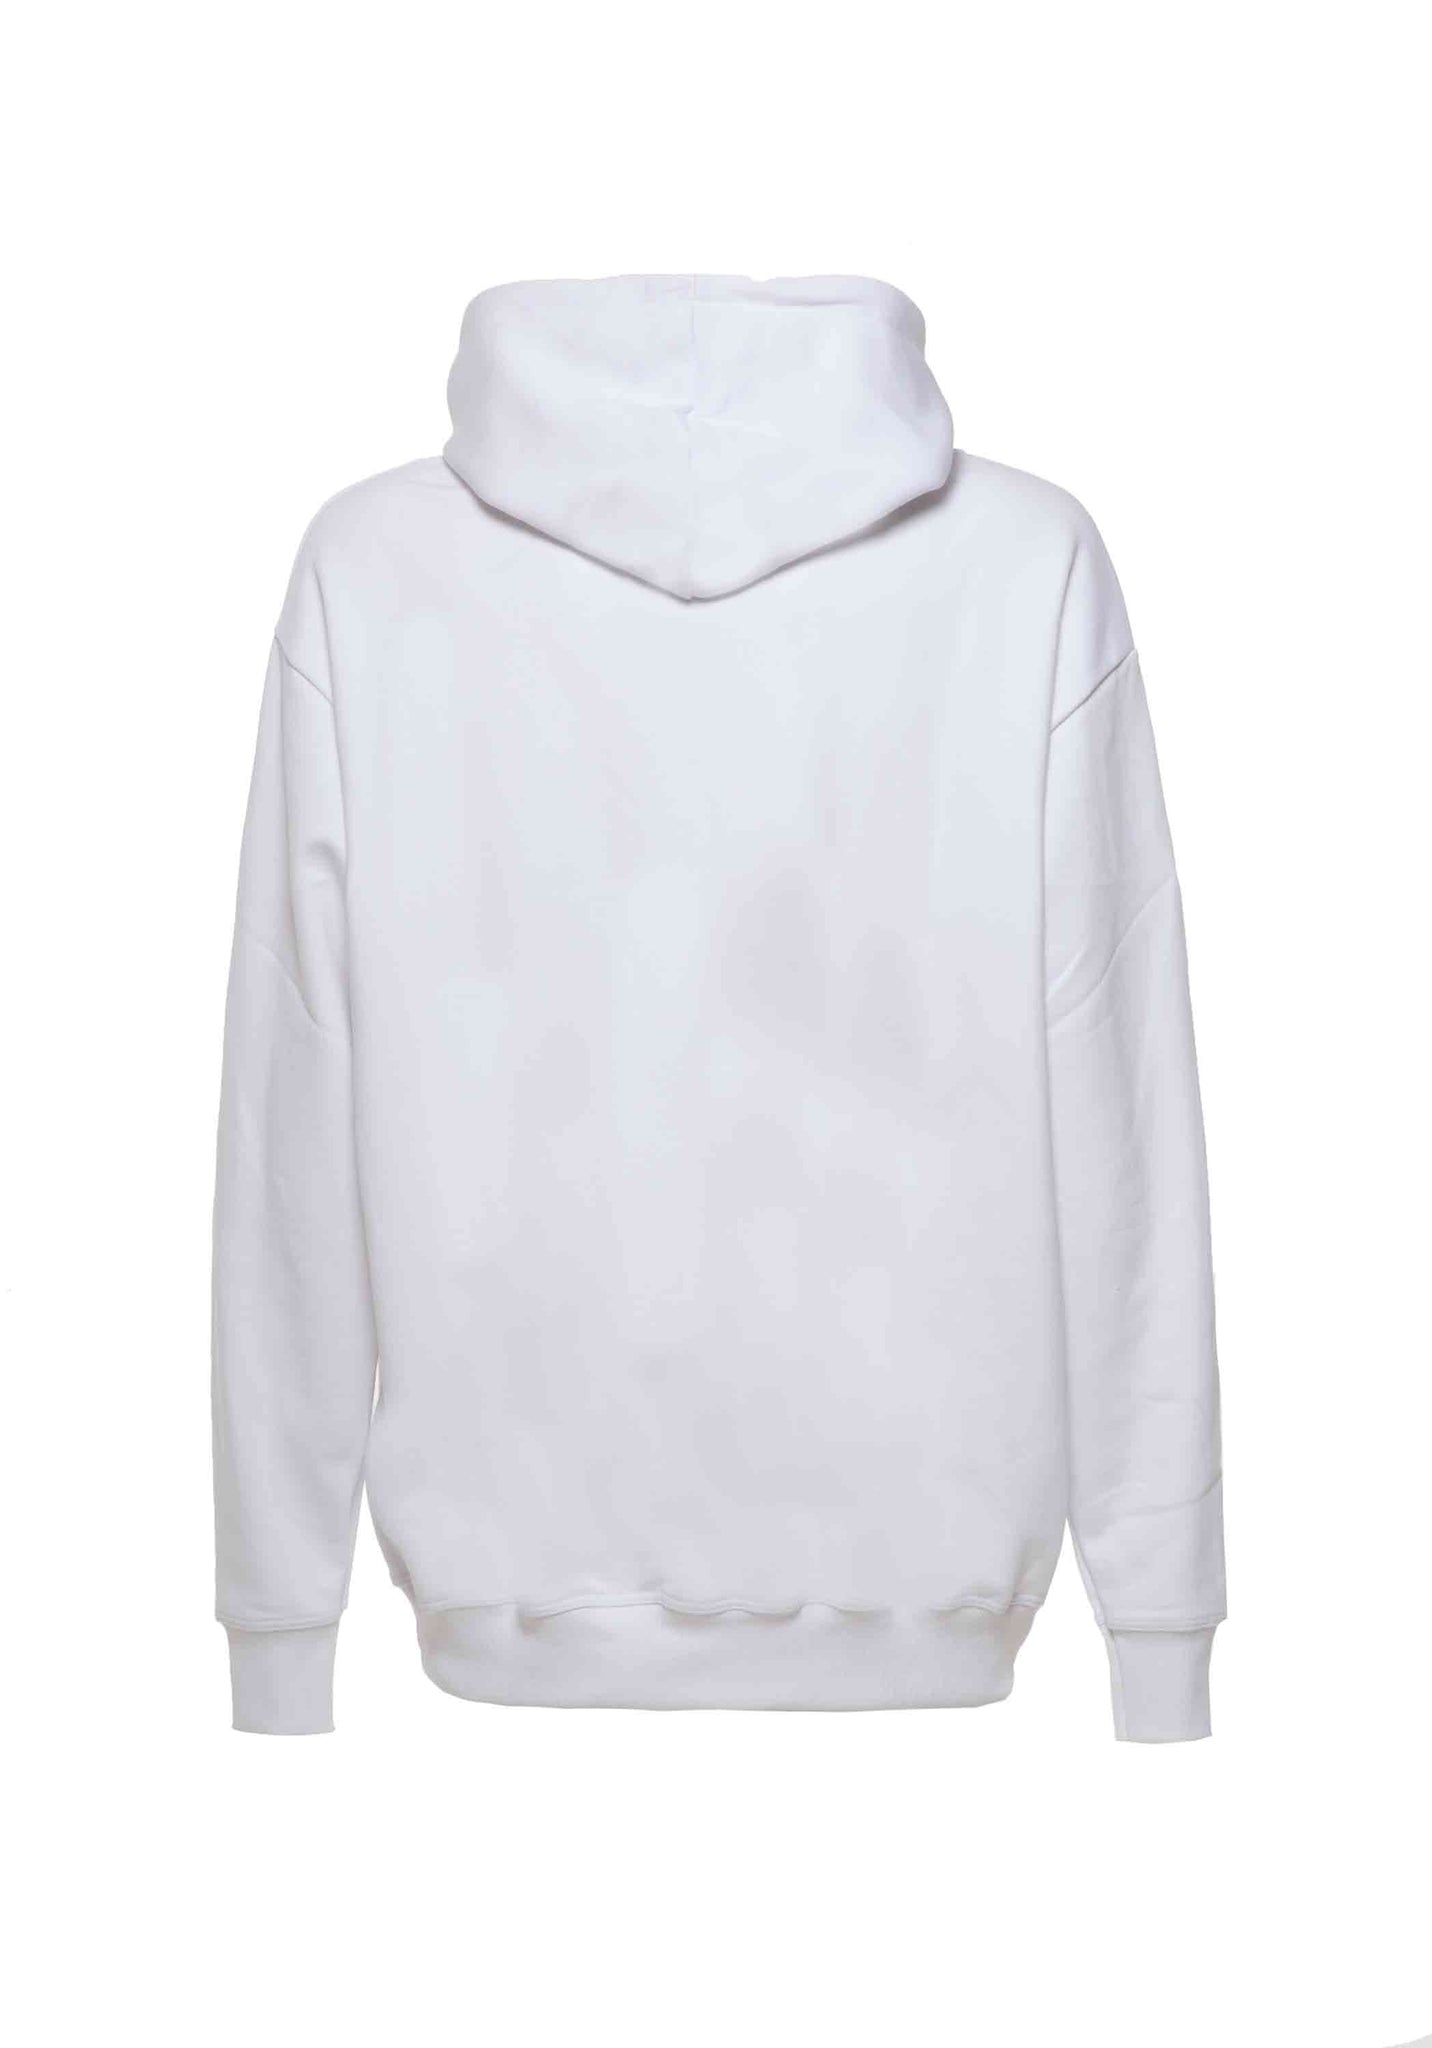 Hoodie Iconic White